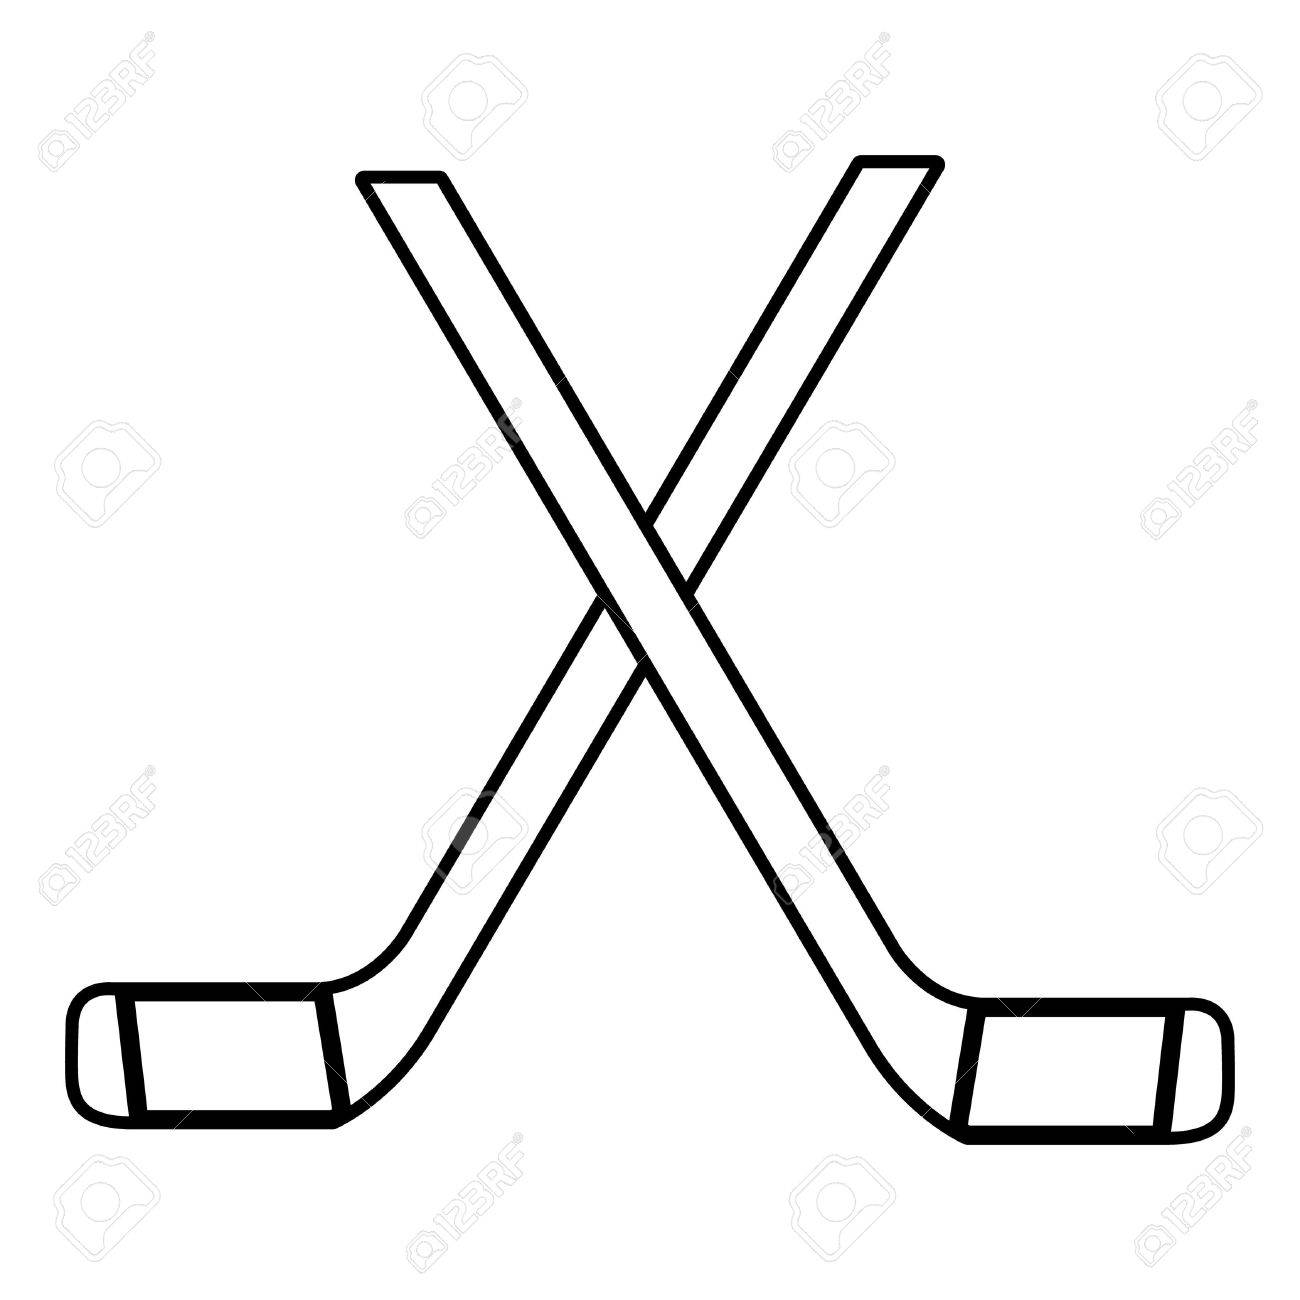 two crossed hockey sticks icon outline style royalty free cliparts rh 123rf com hockey sticks clipart free hockey sticks clipart